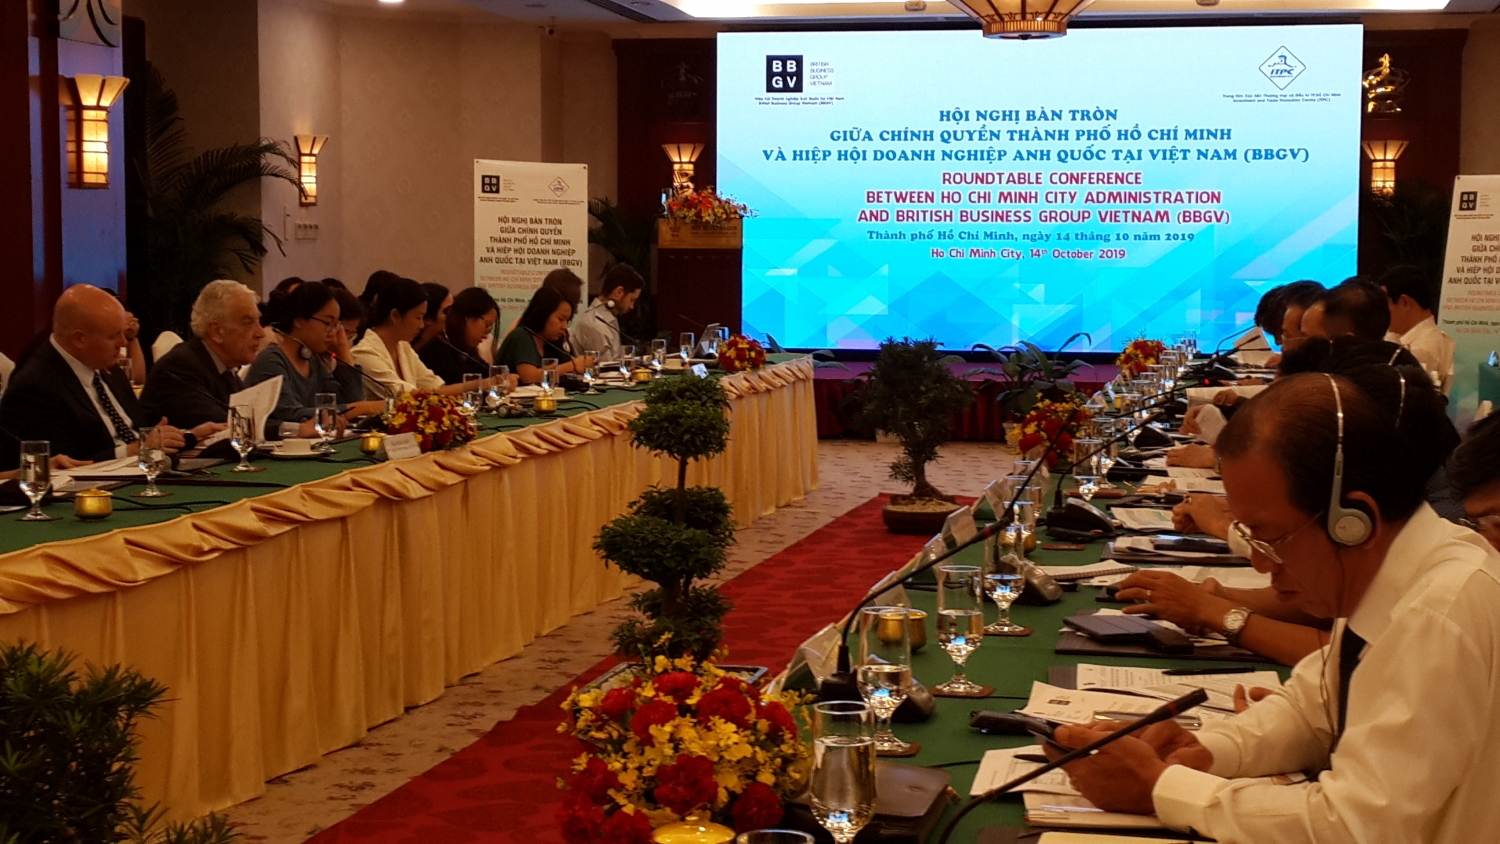 Ho Chi Minh city supports UK businesses to settle difficulties